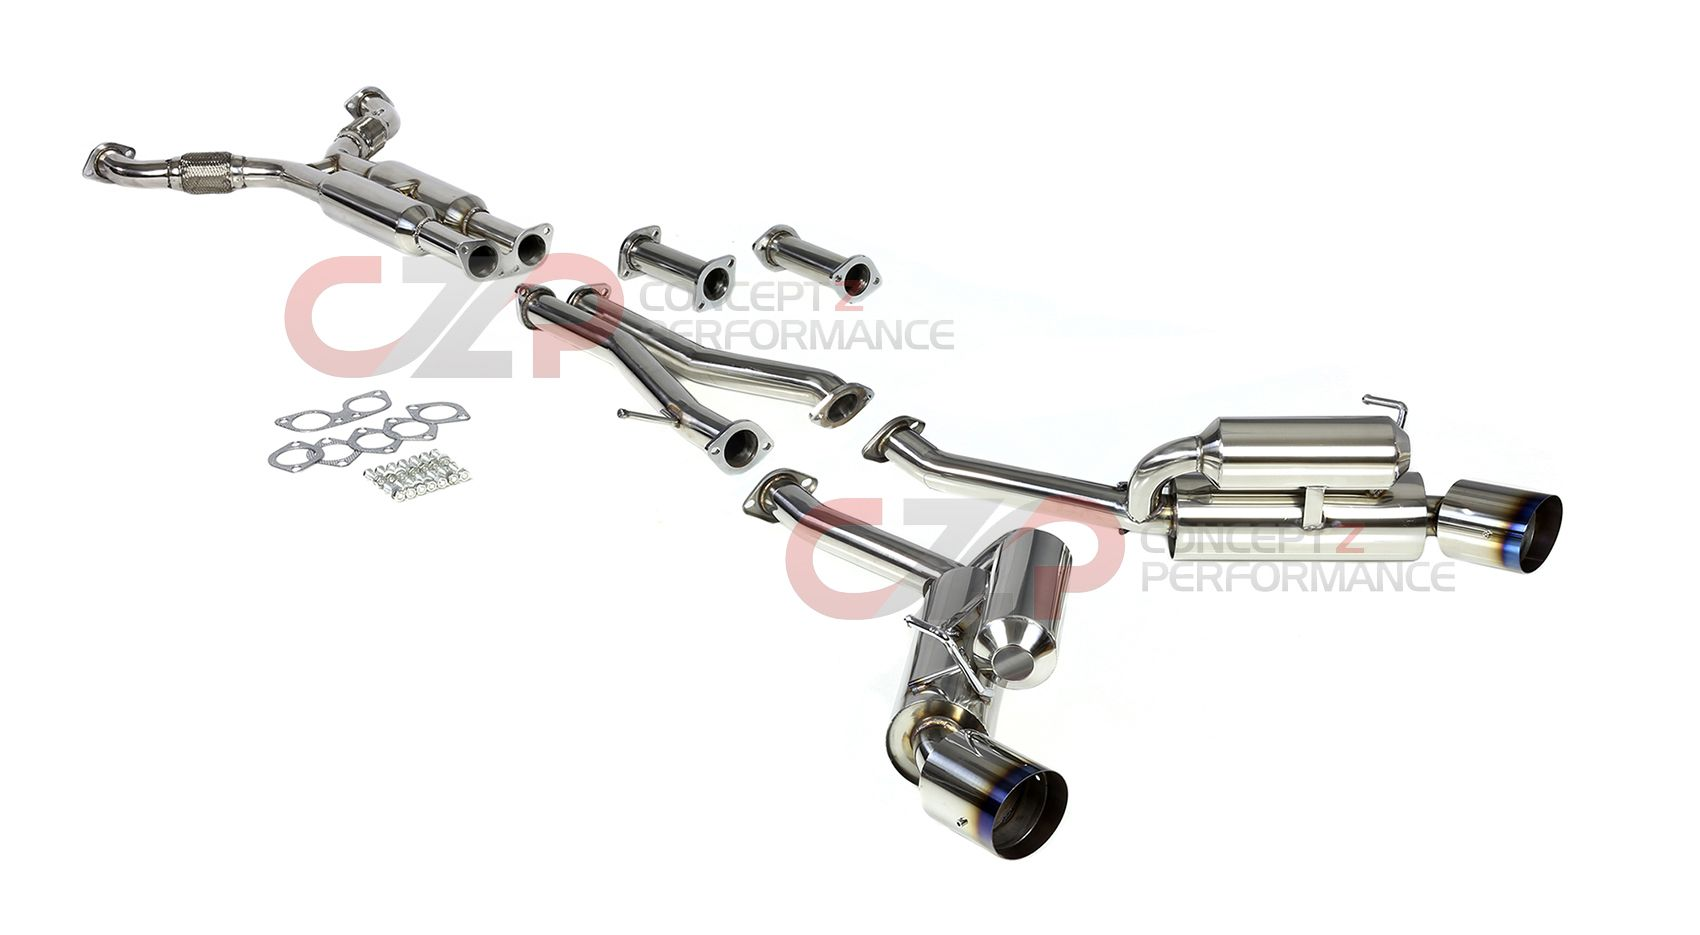 v35 exhaust system    exhaust systems  u0026 kits